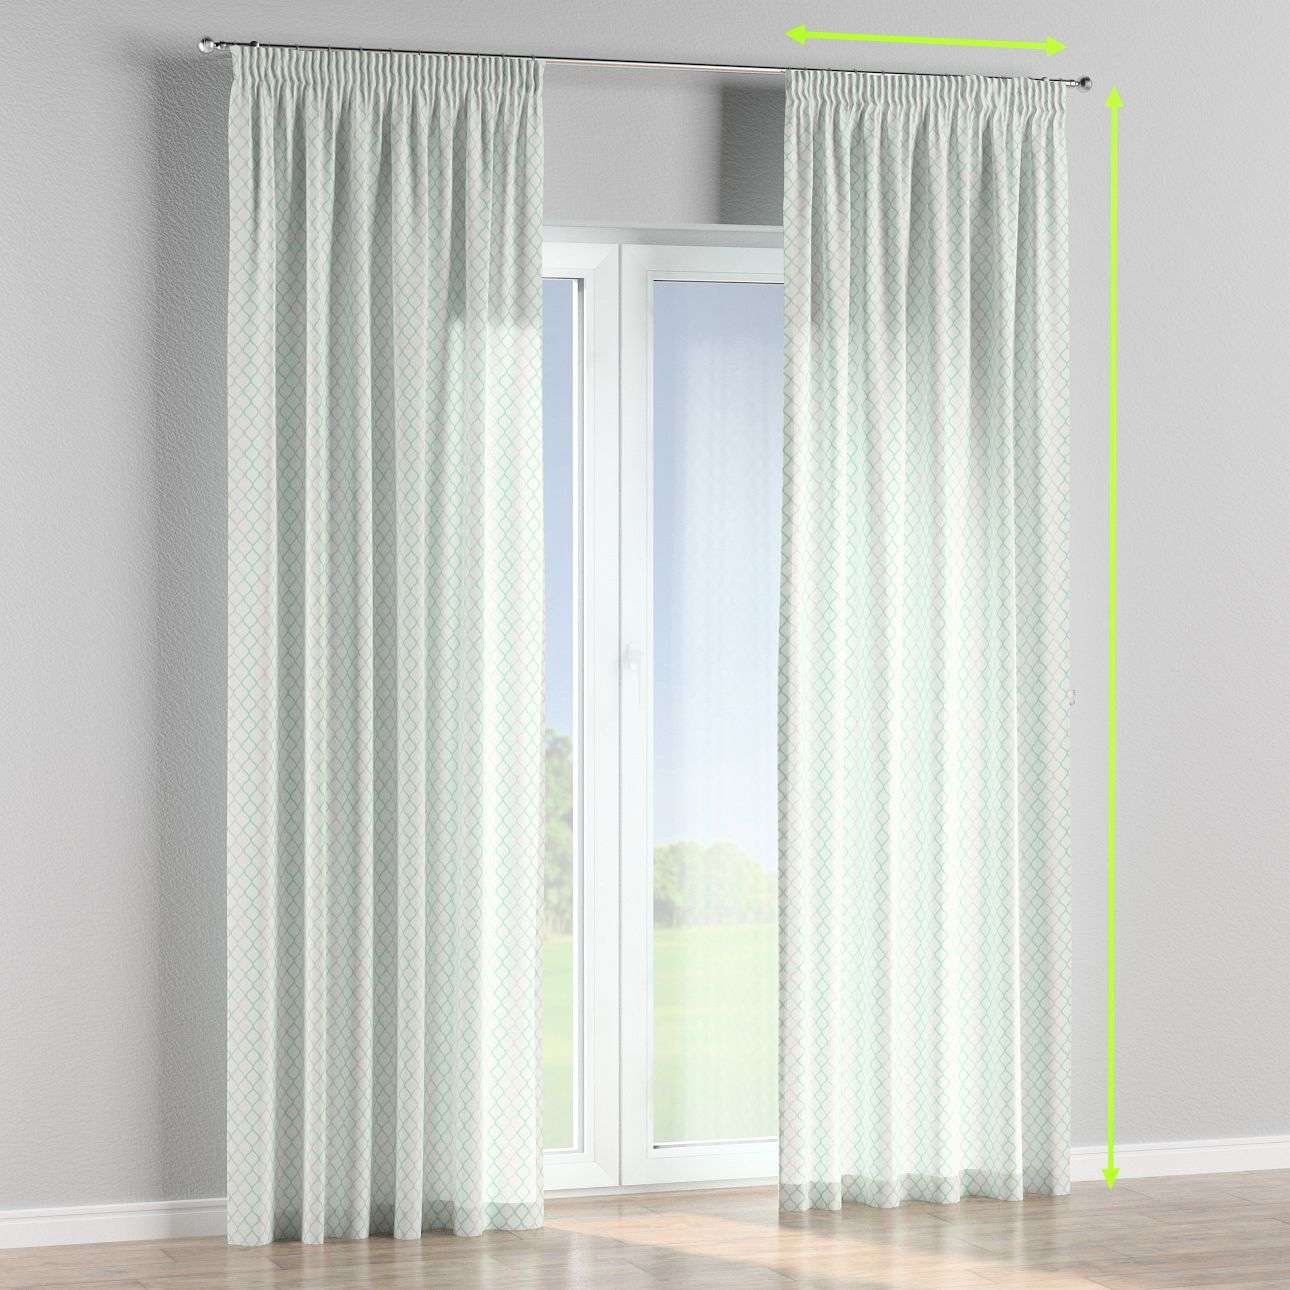 Pencil pleat lined curtains in collection Geometric, fabric: 141-47